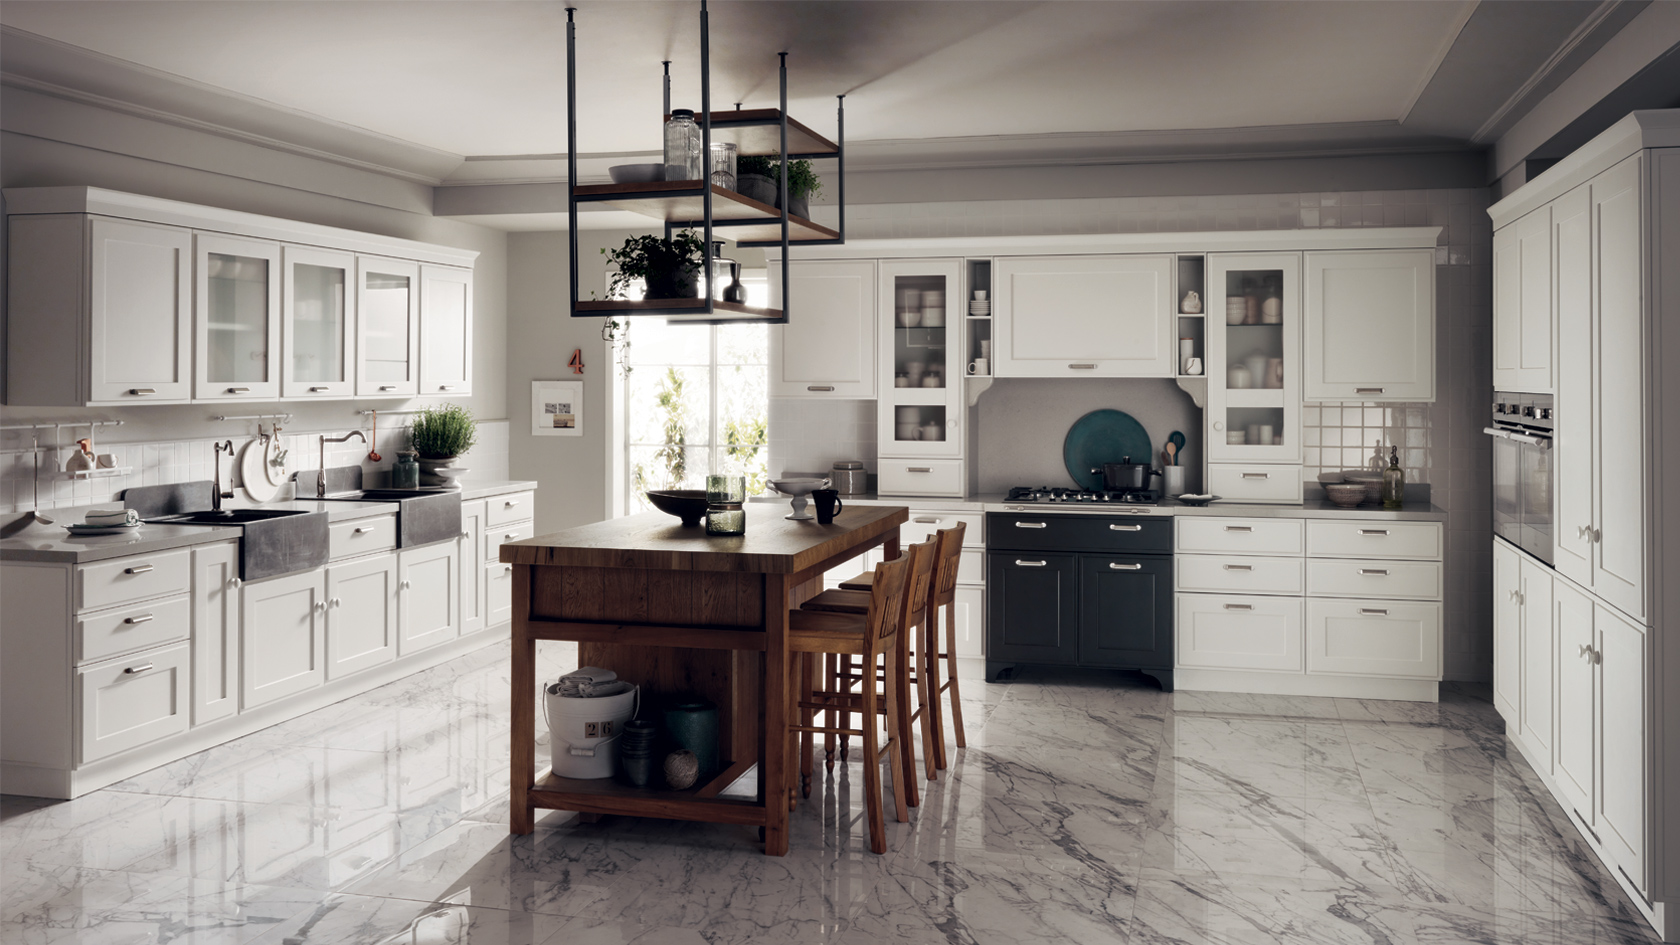 Best Scavolini Tavoli Da Cucina Images - Home Interior Ideas ...